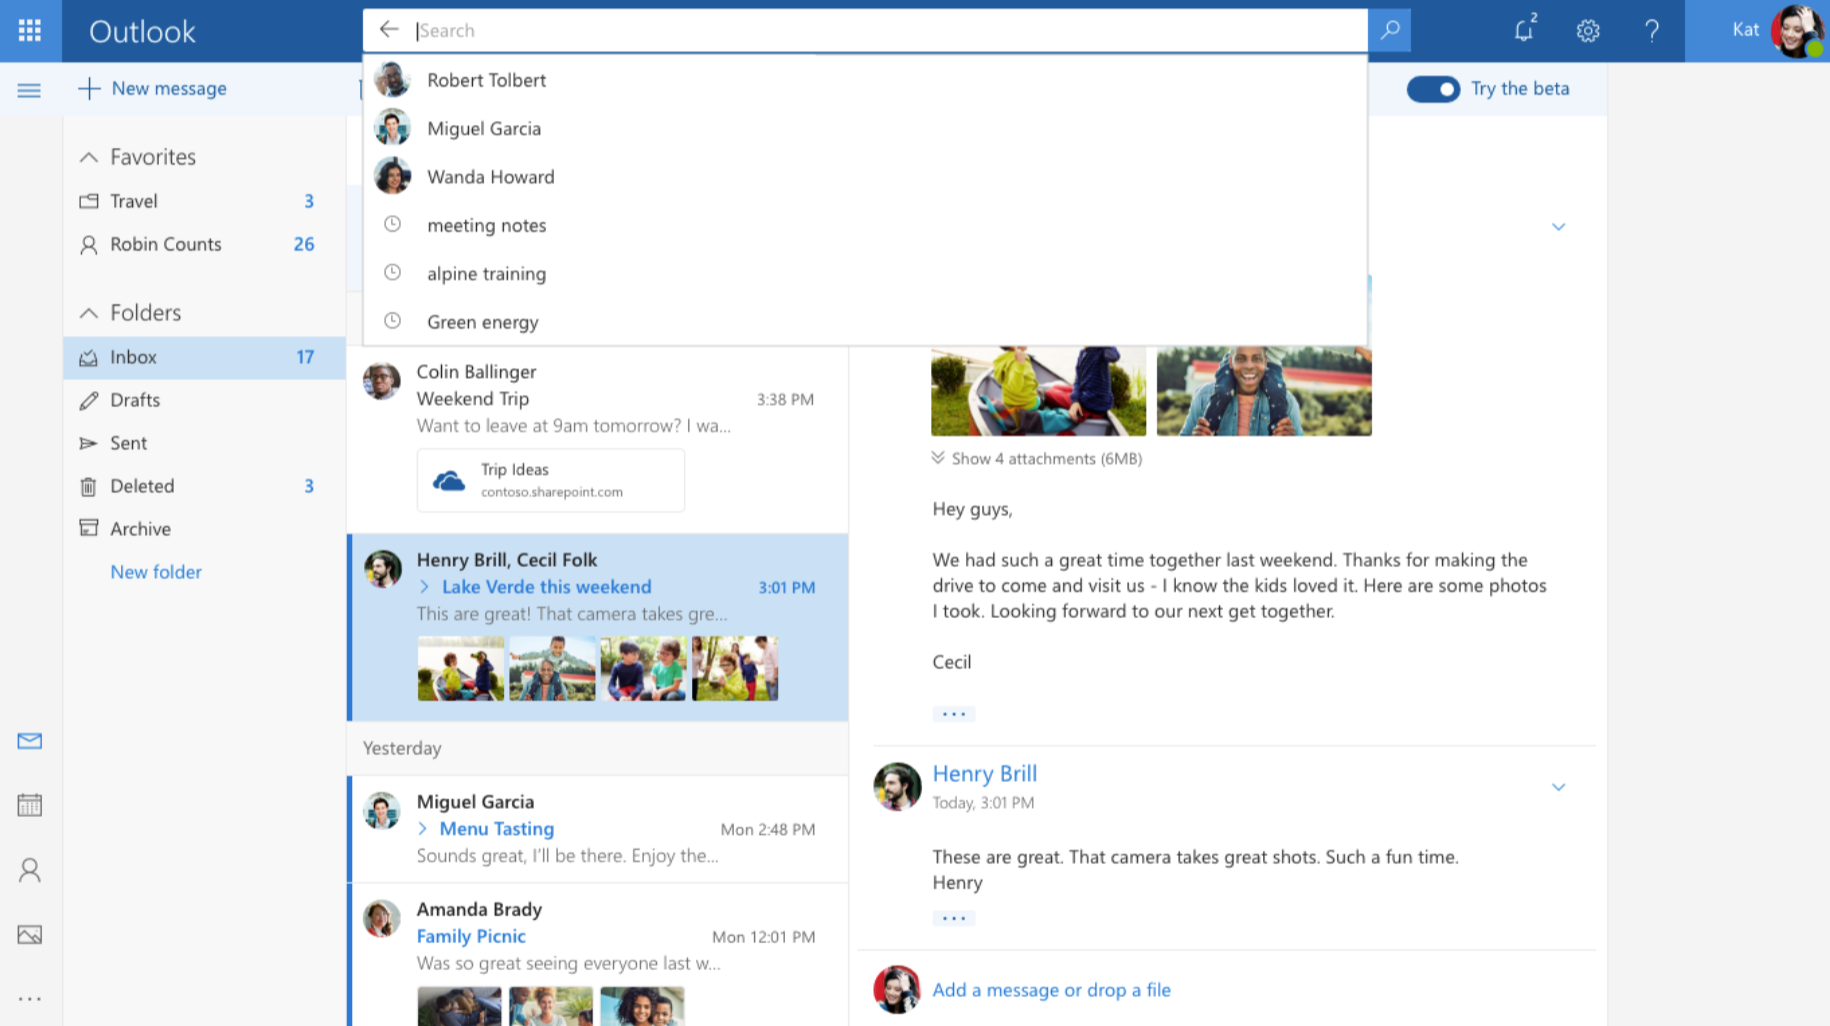 Microsoft launches a faster, smarter Outlook com into public